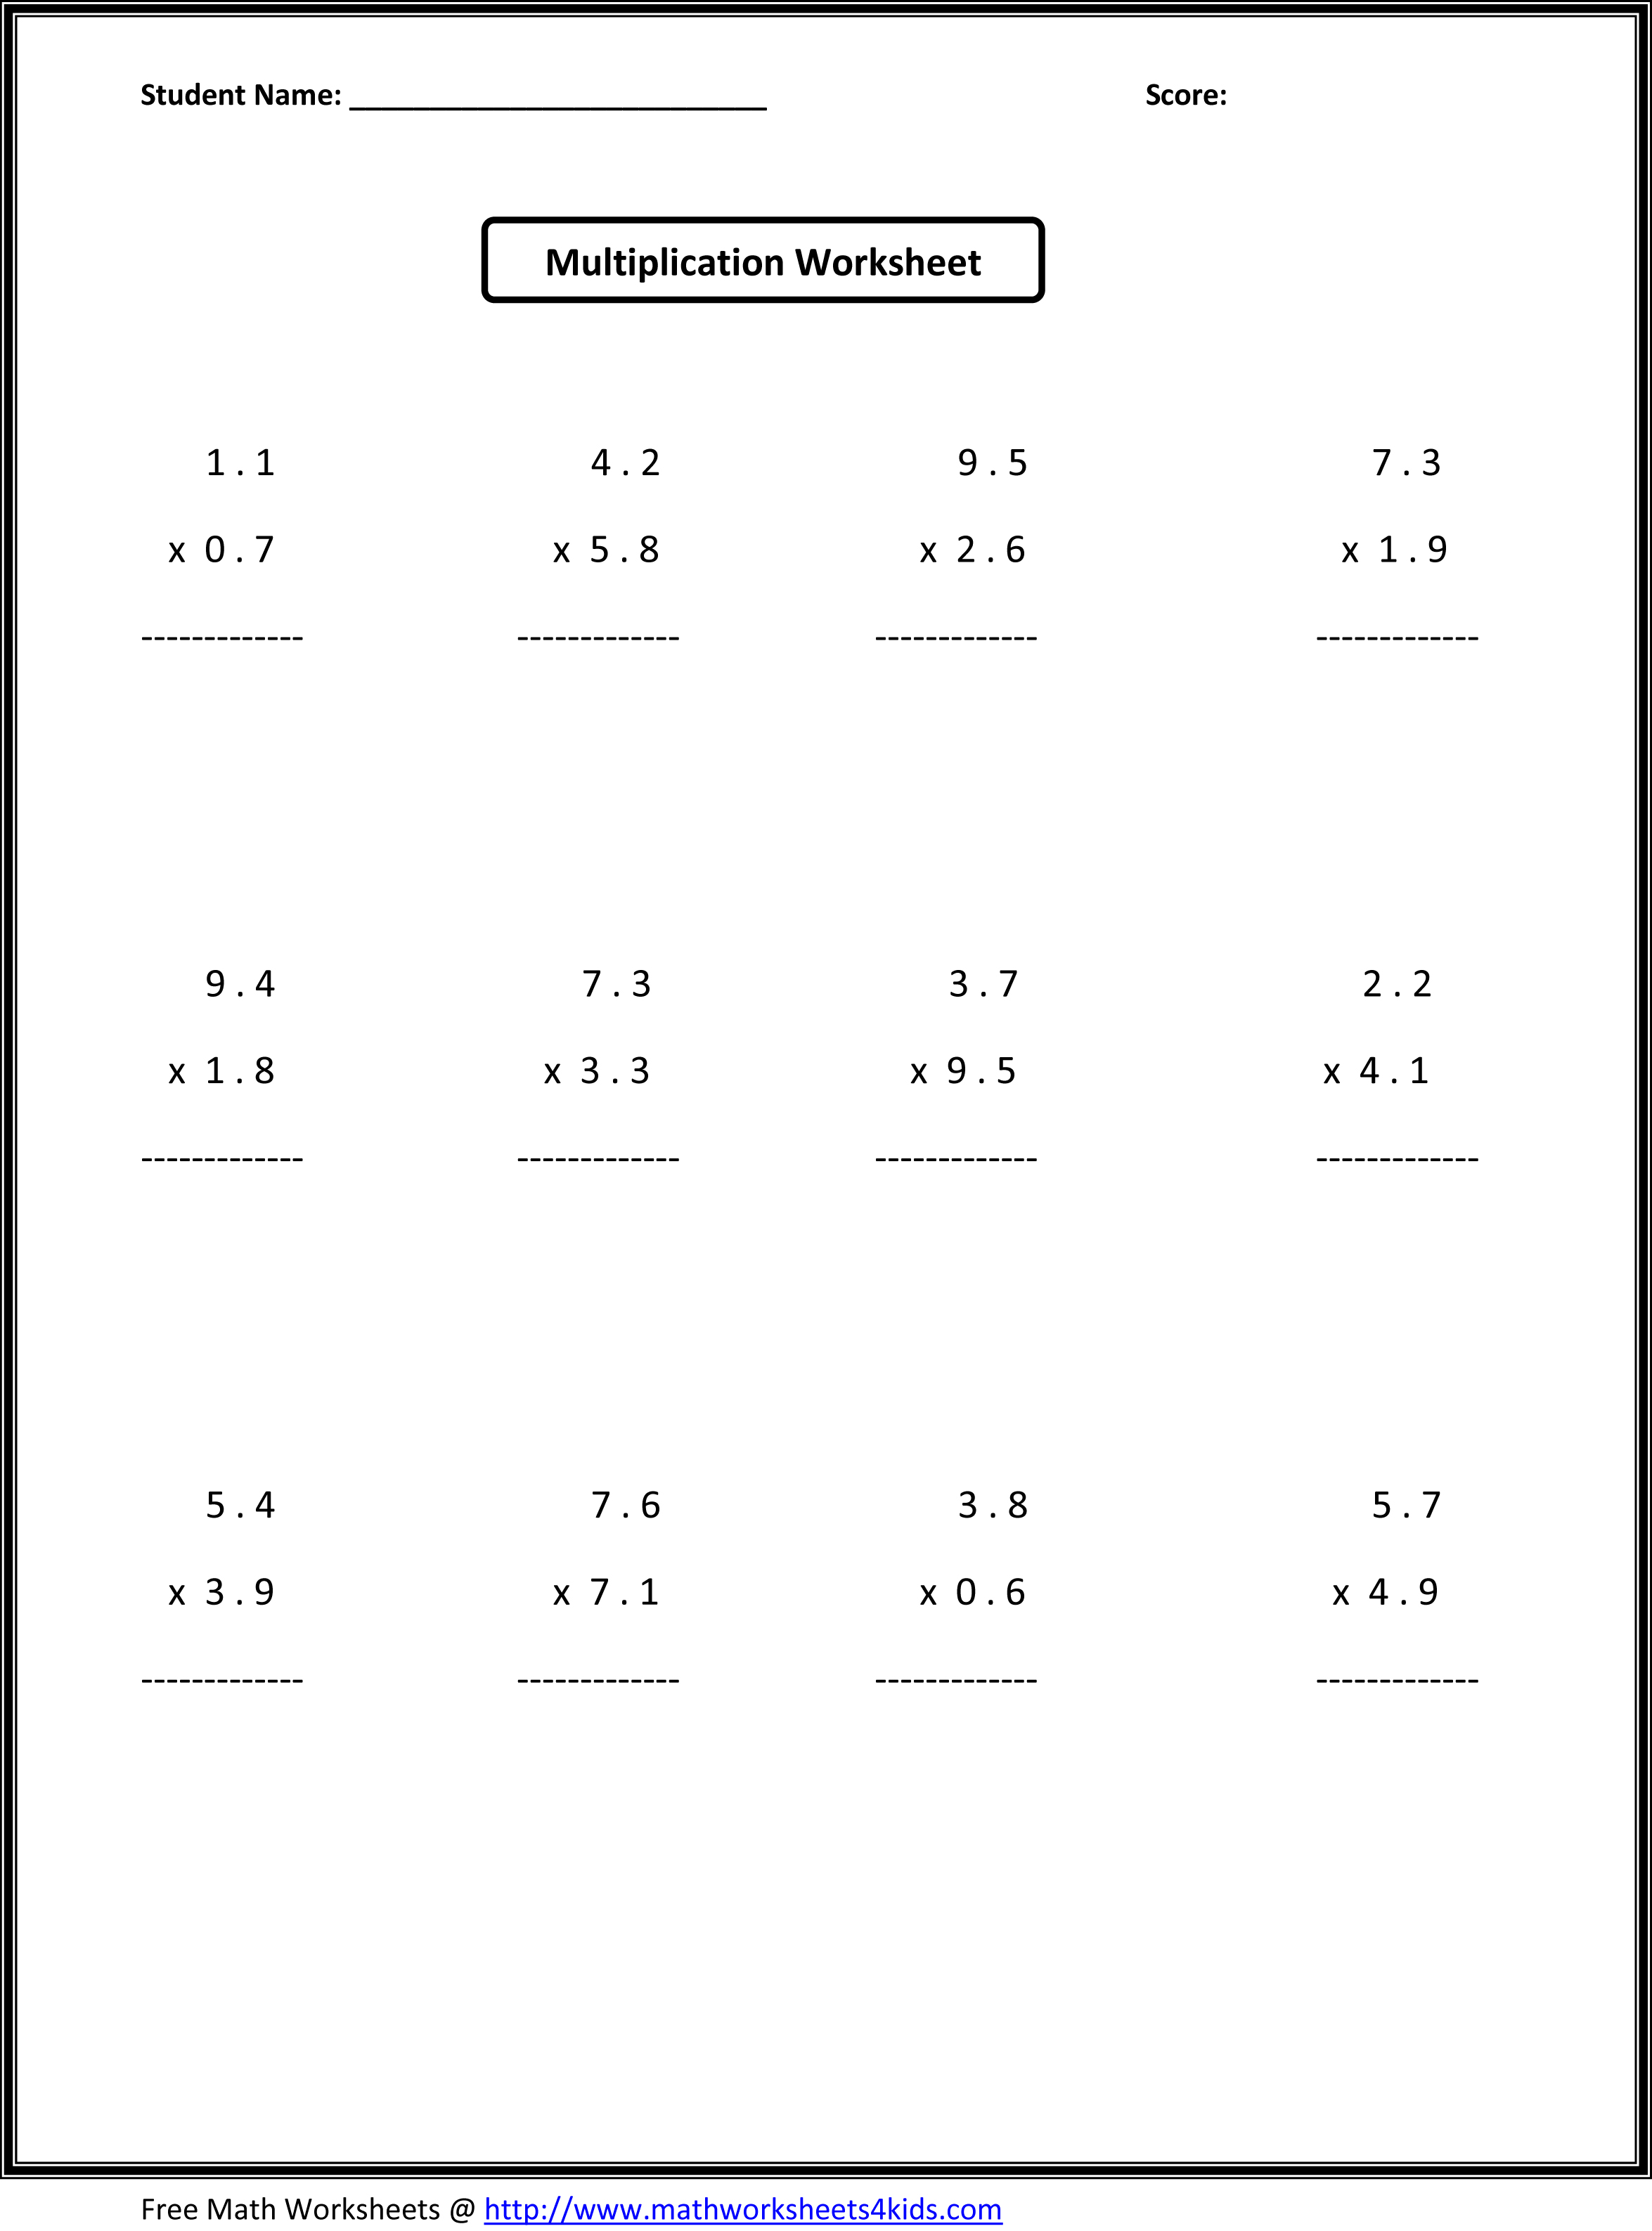 Free Printable Math Worksheets For 7Th Grade – Math Worksheets for 7th Graders Printable Free